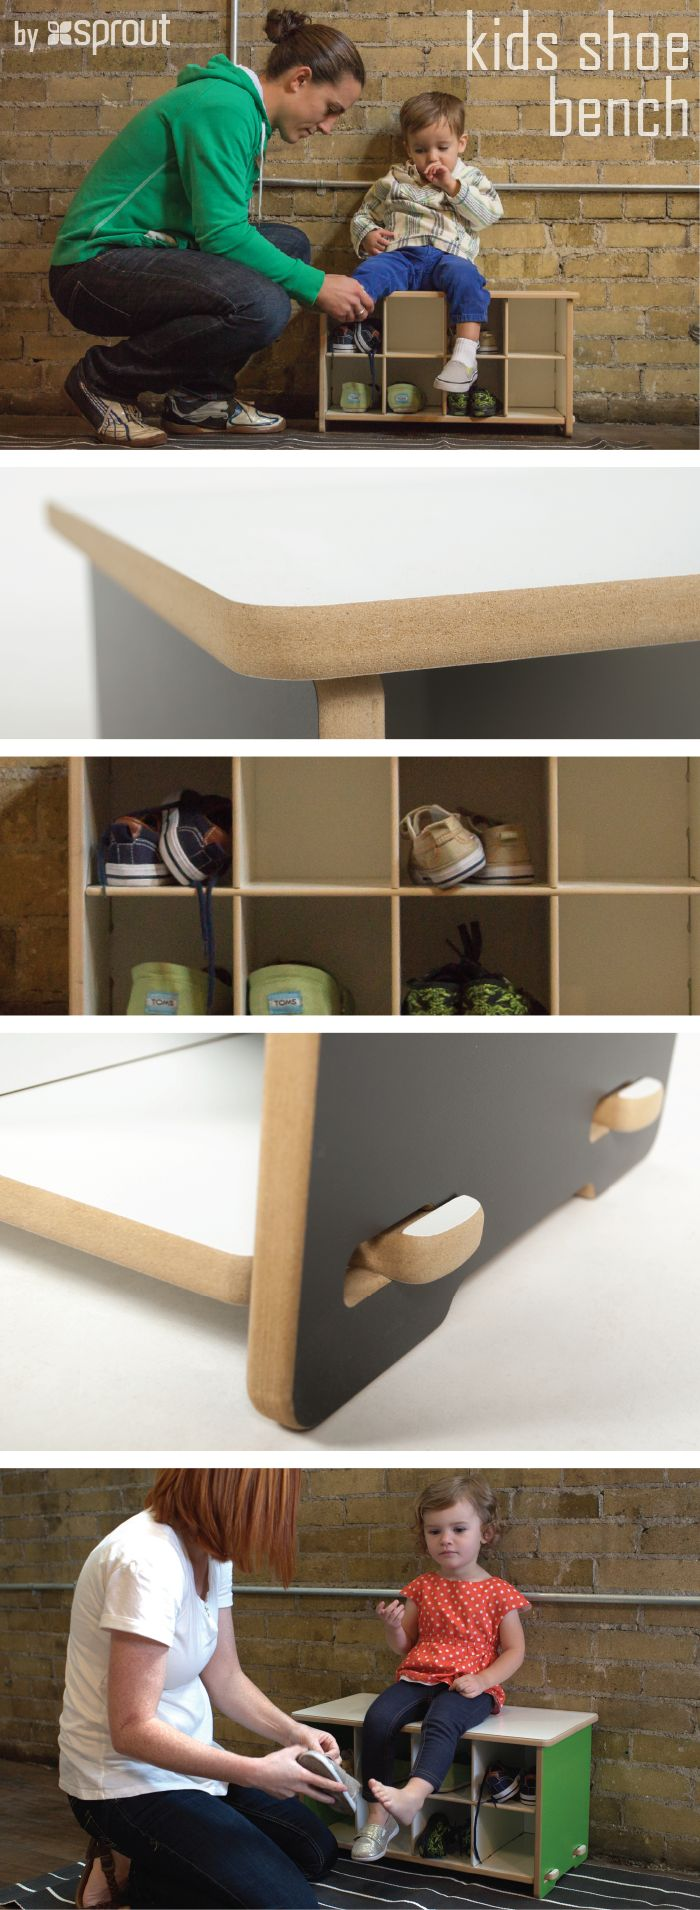 A shoe bench perfectly sized for kids! Perfect for the playroom!